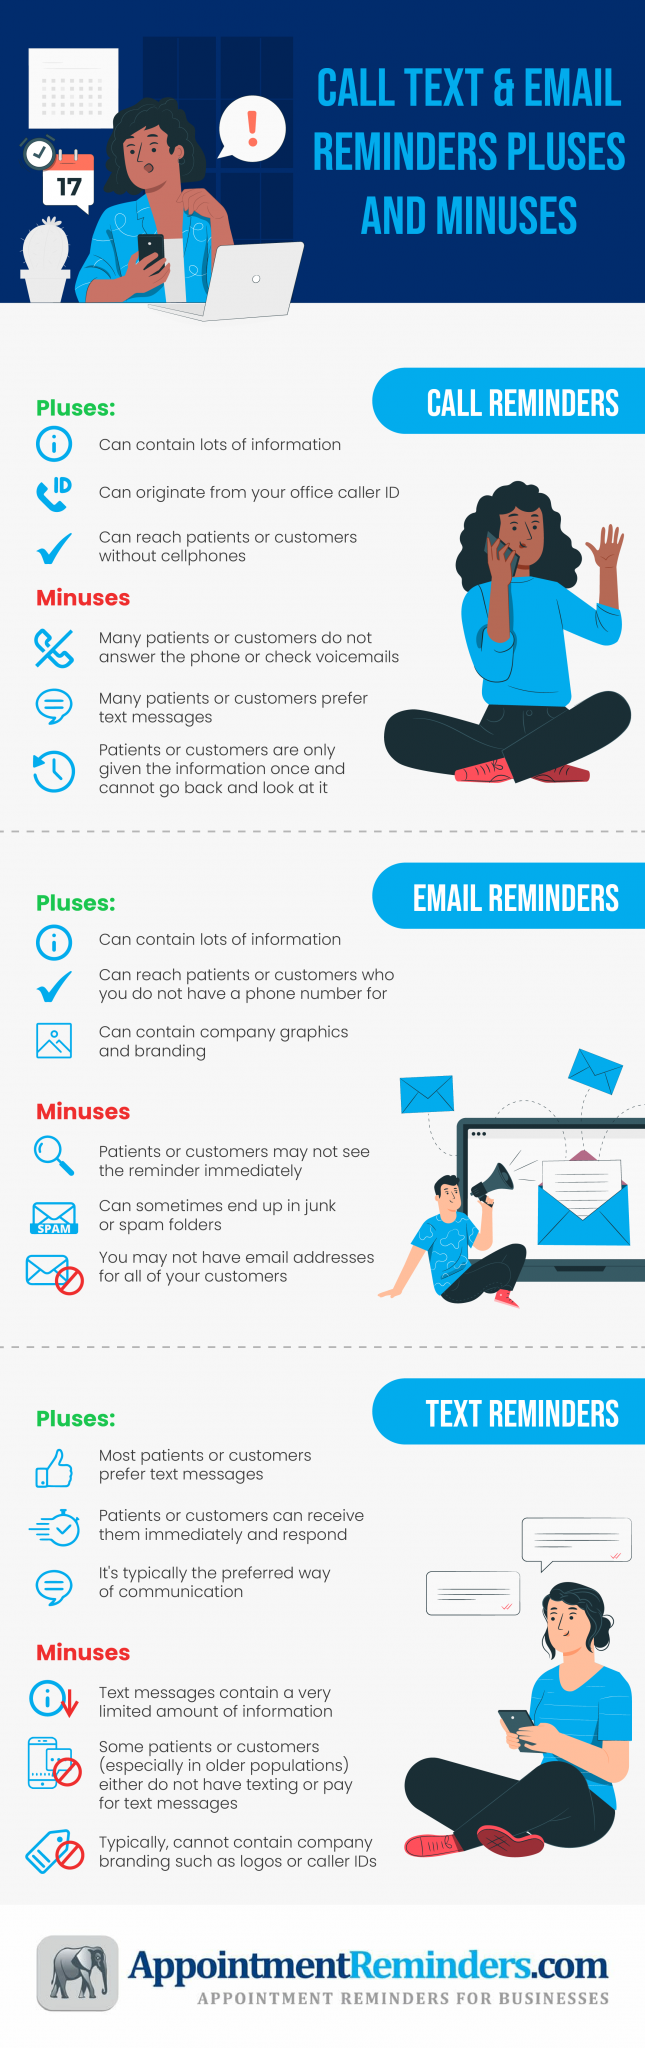 Call Text Email Reminders Pluses And Minuses